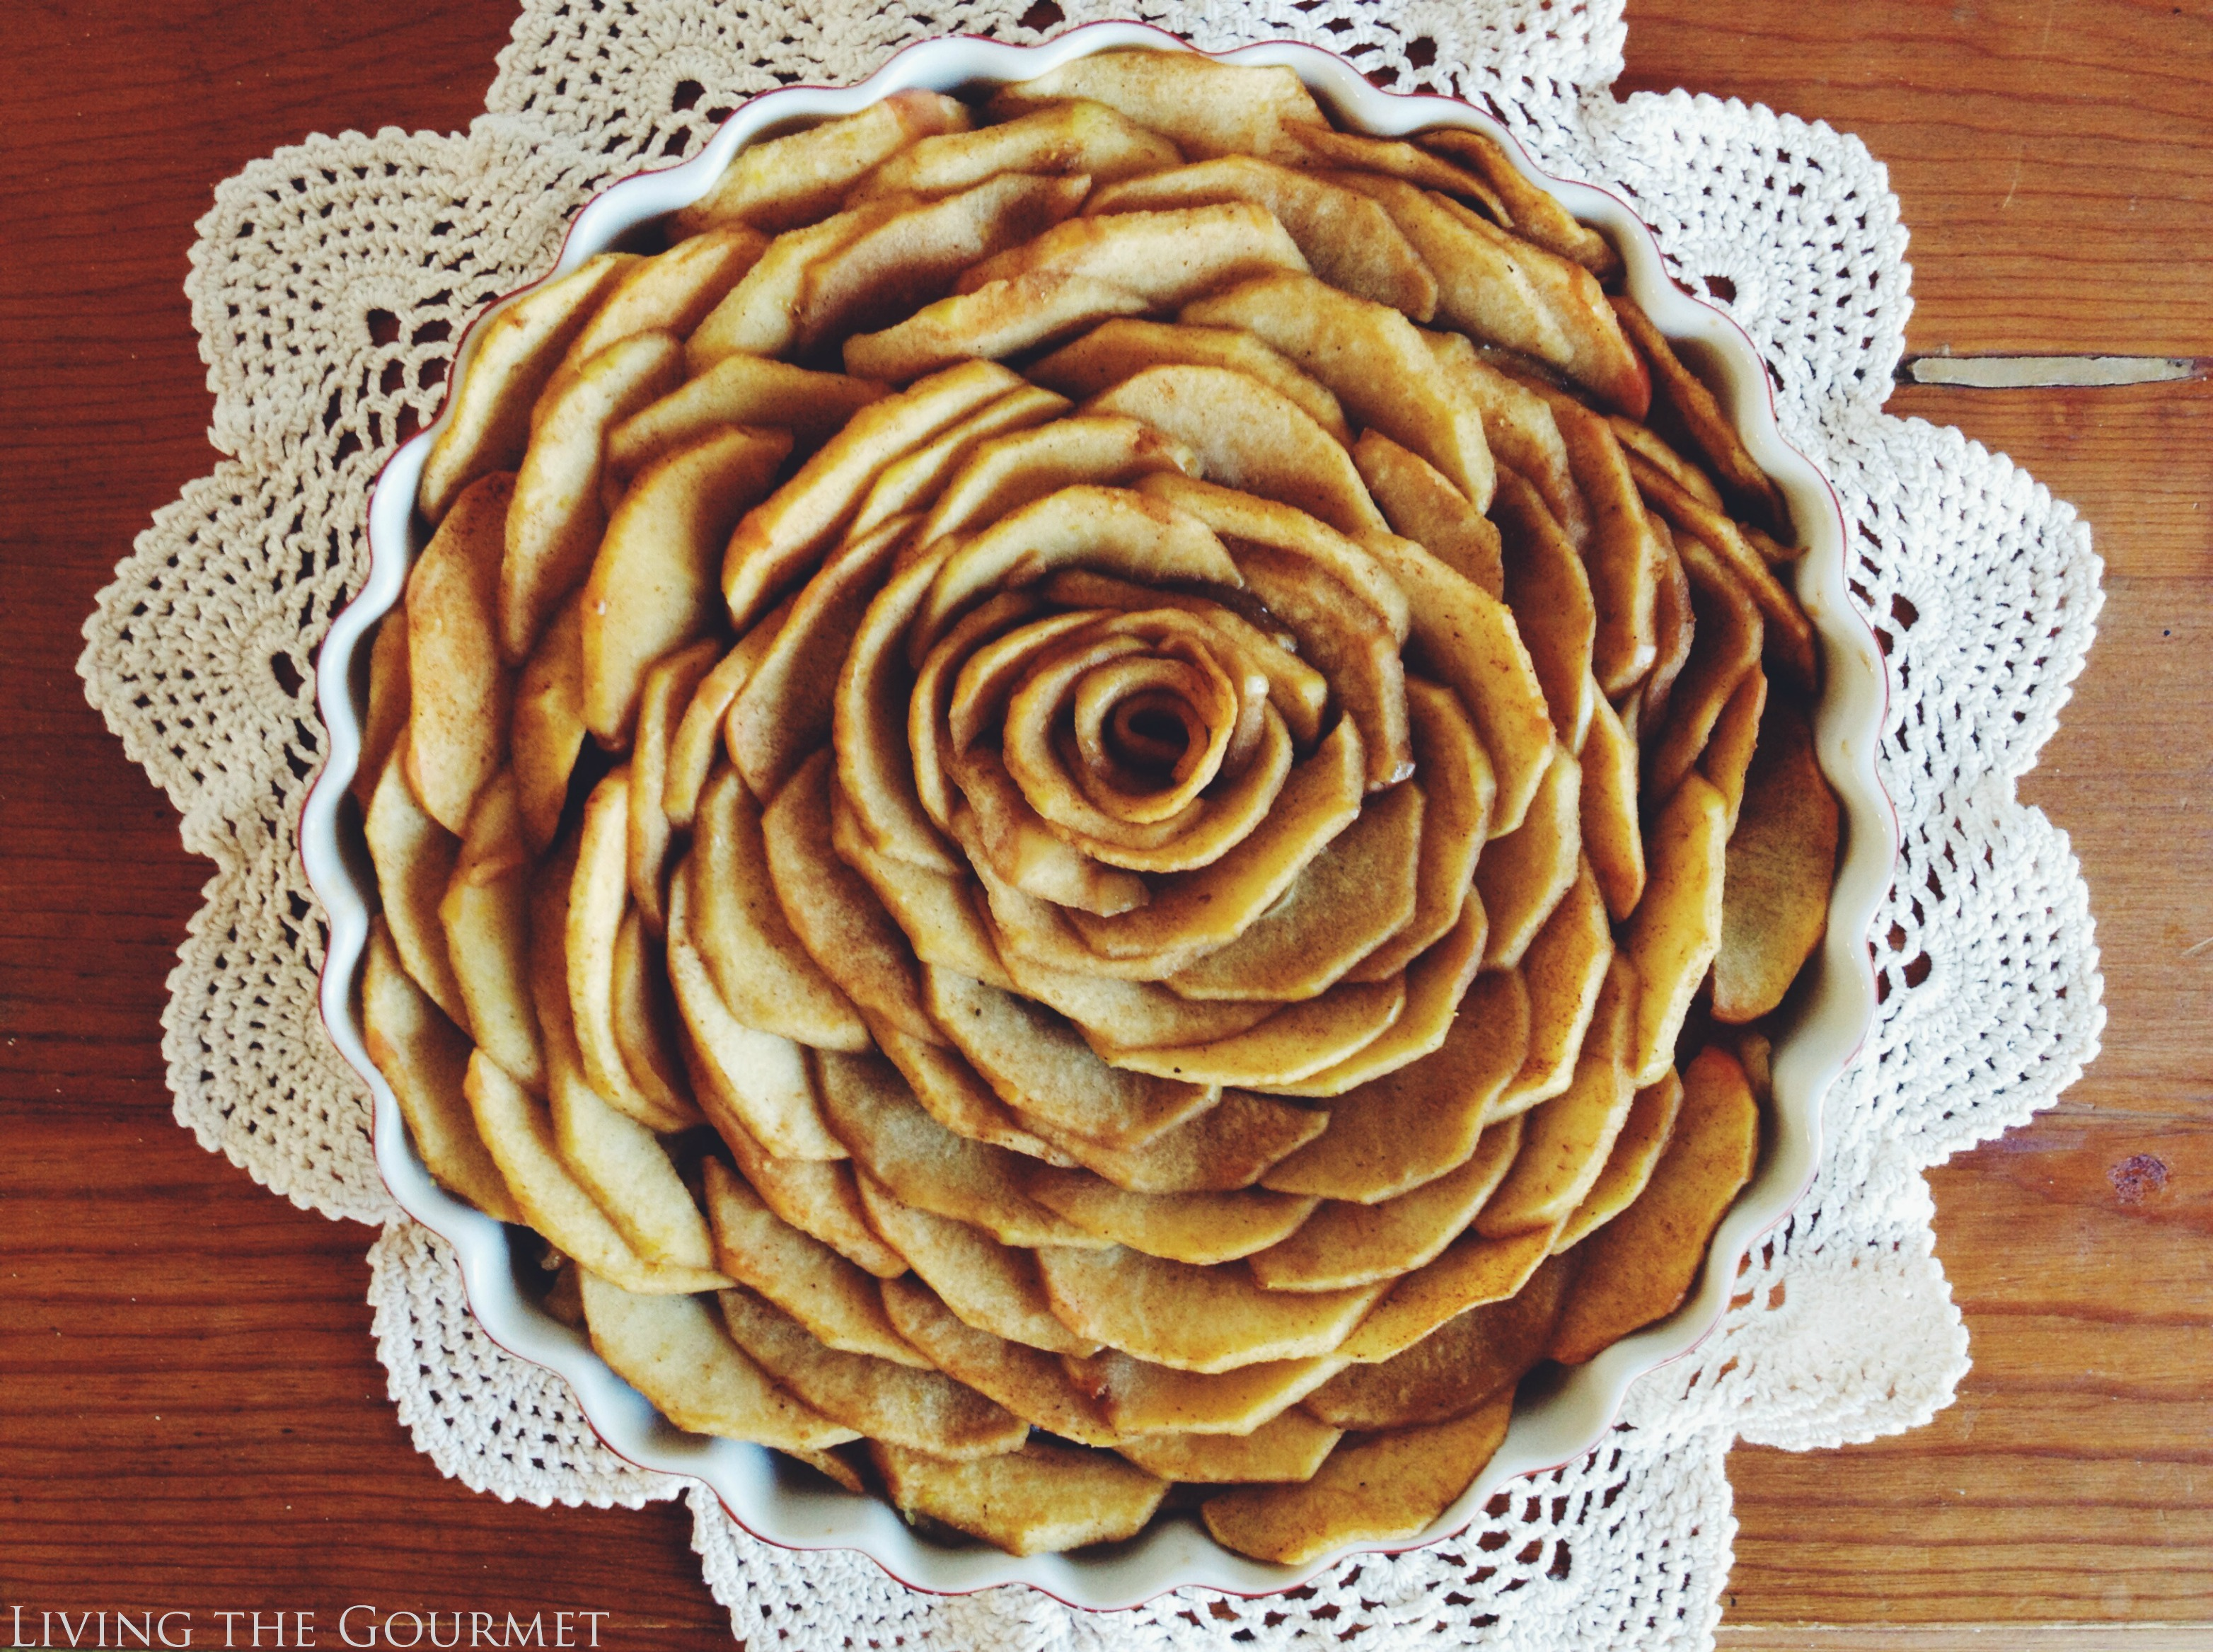 Living the Gourmet: French Apple Tart